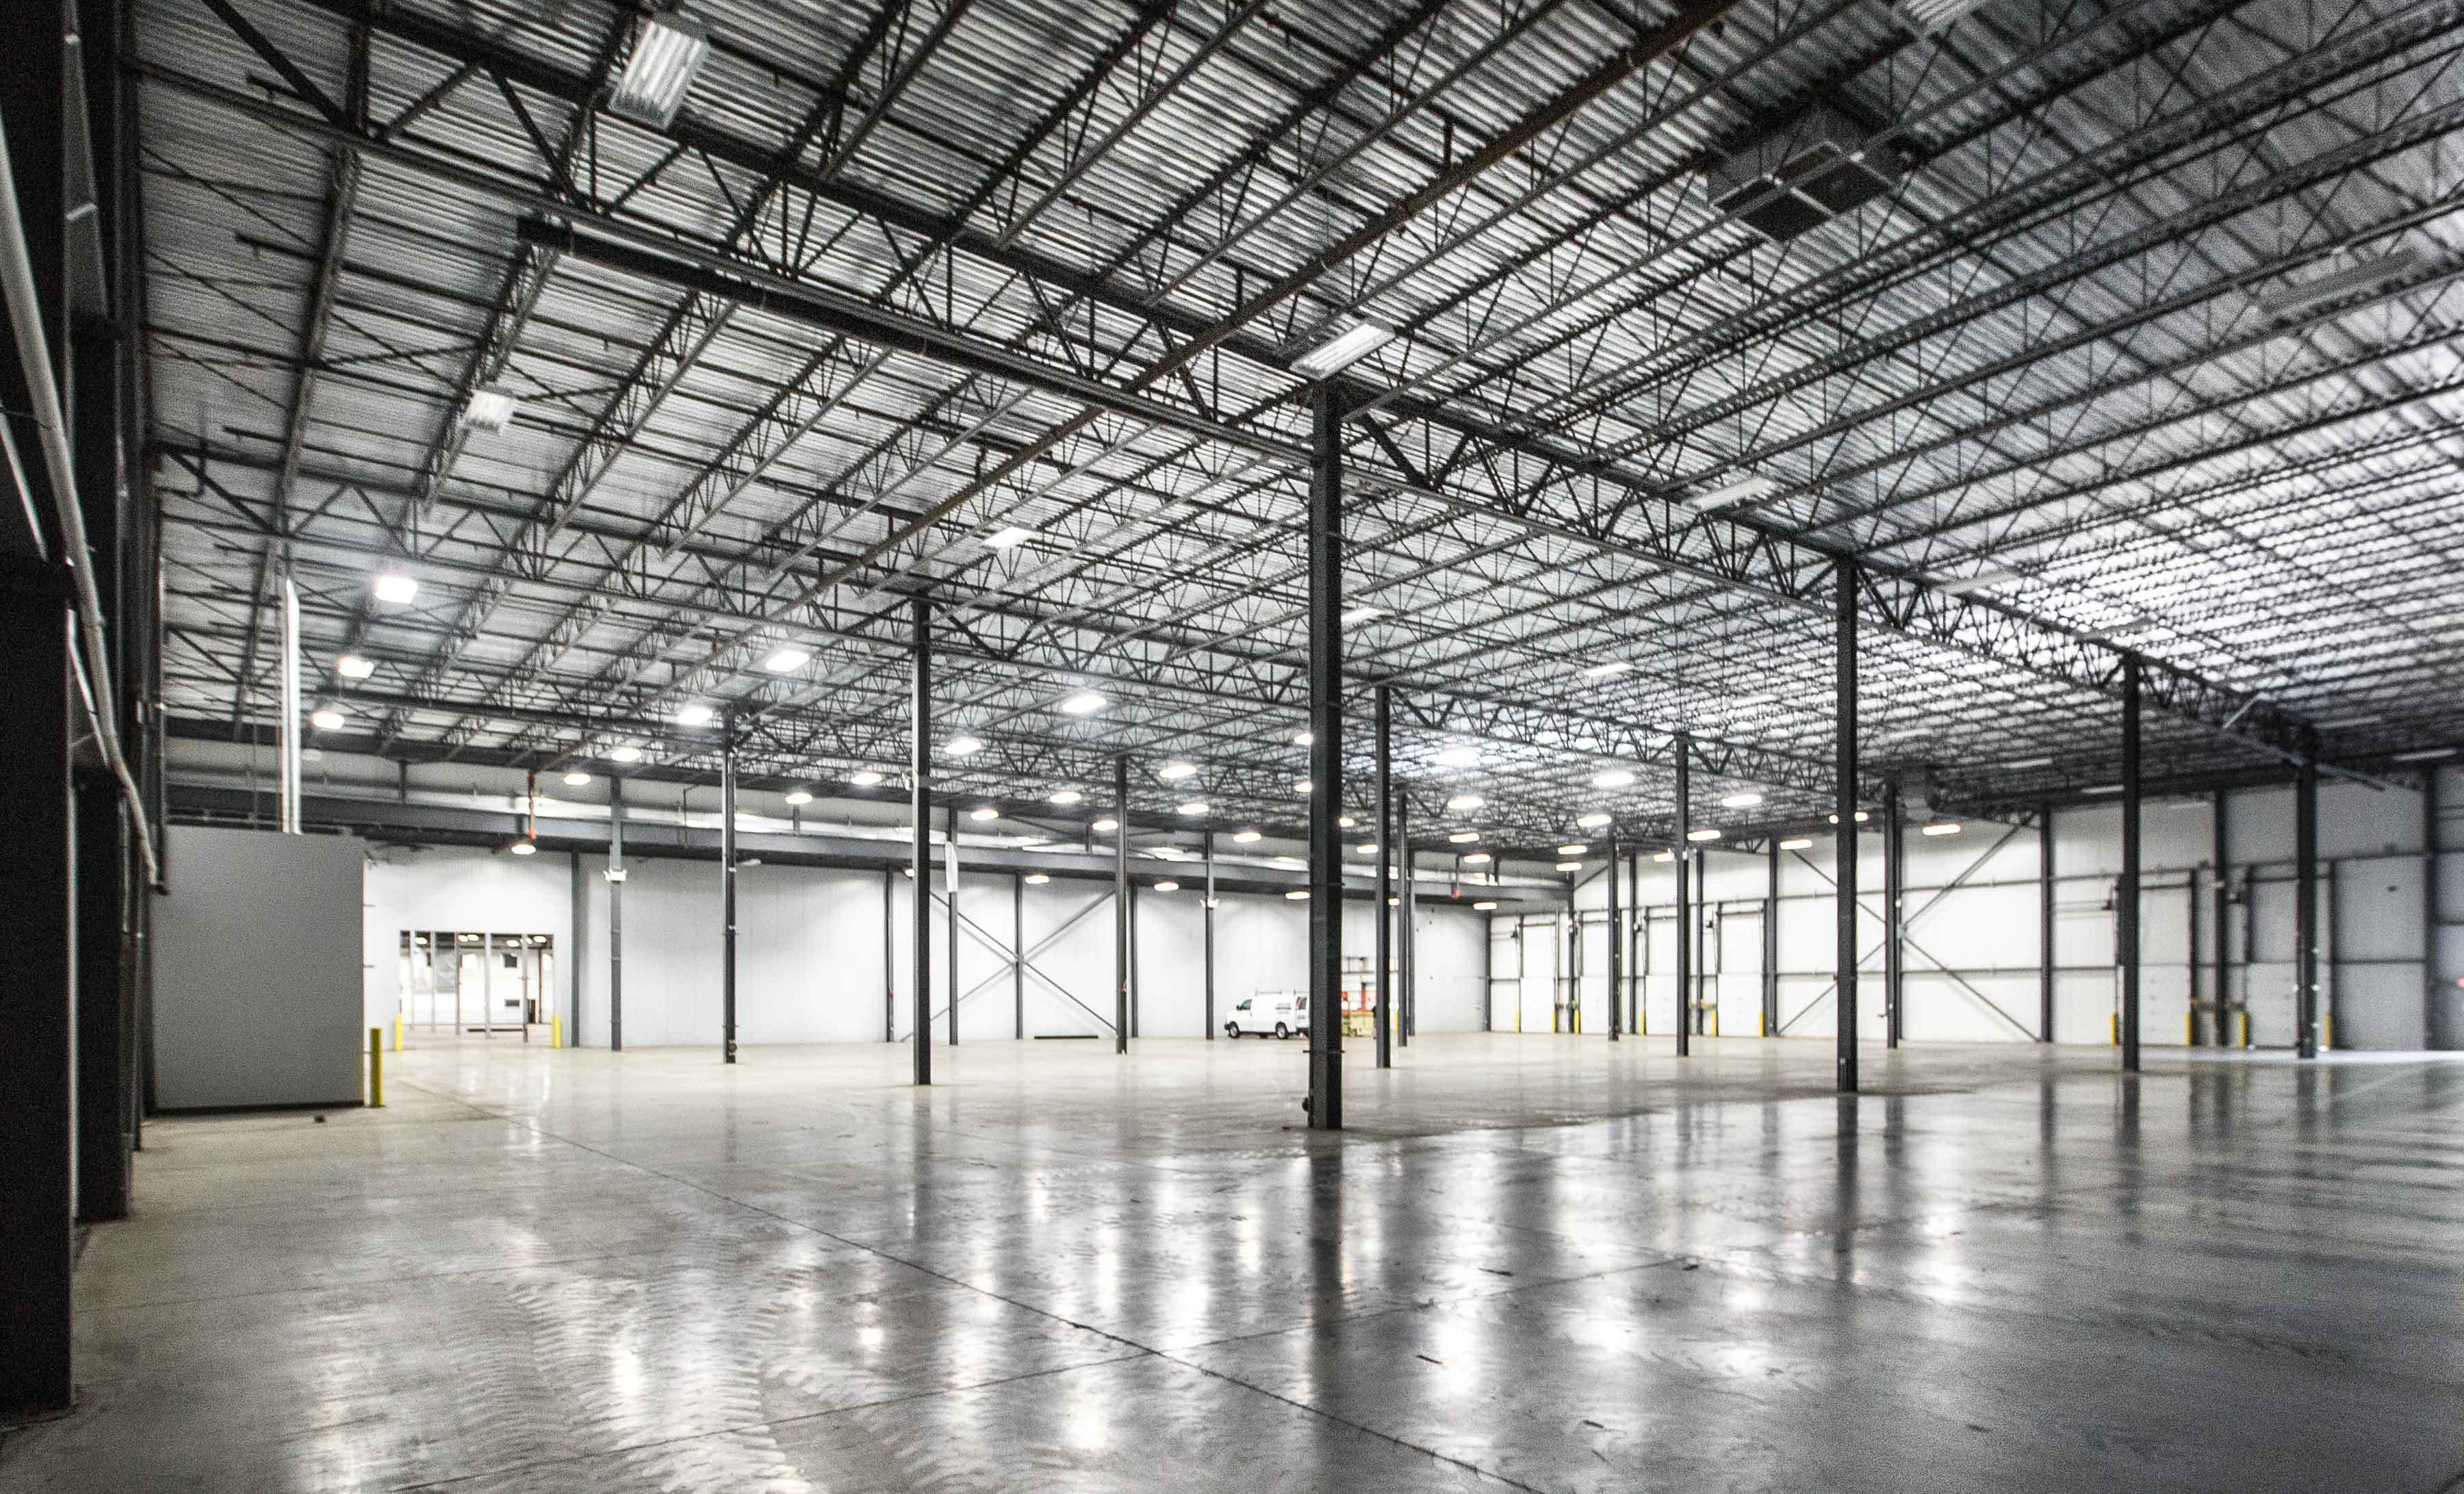 Interior view of a large empty warehouse type space